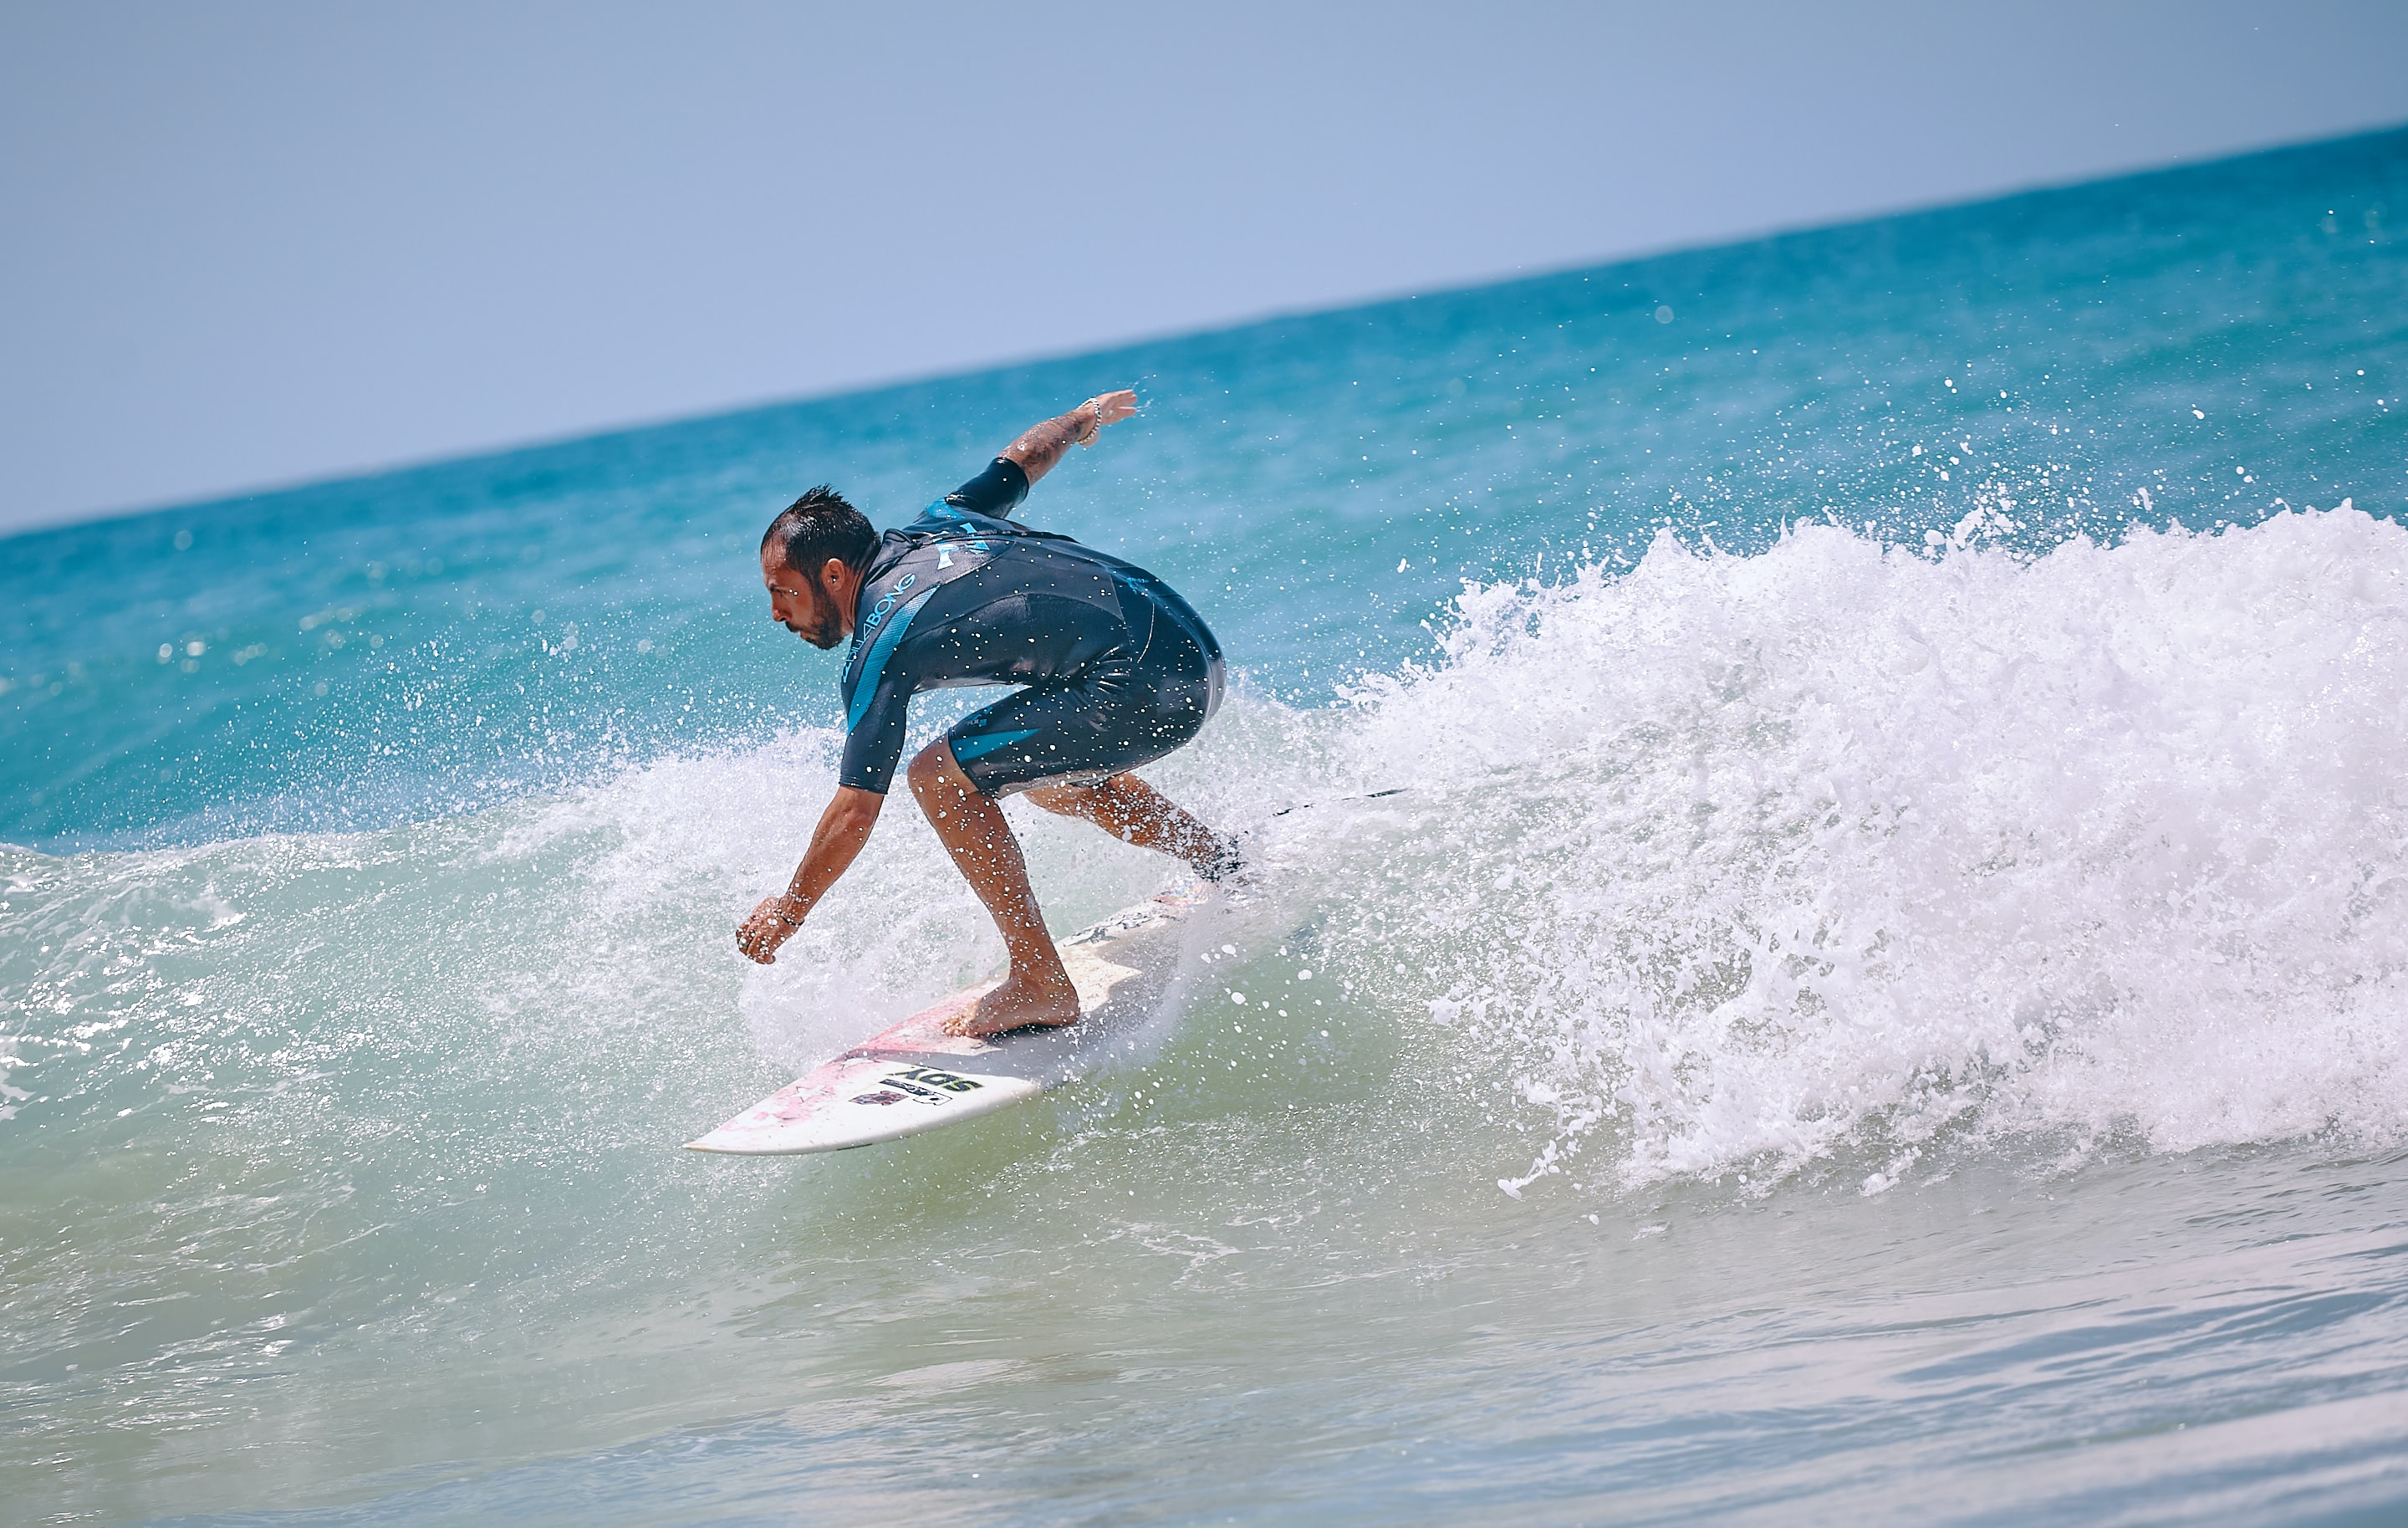 person riding a surfboard on a body of water